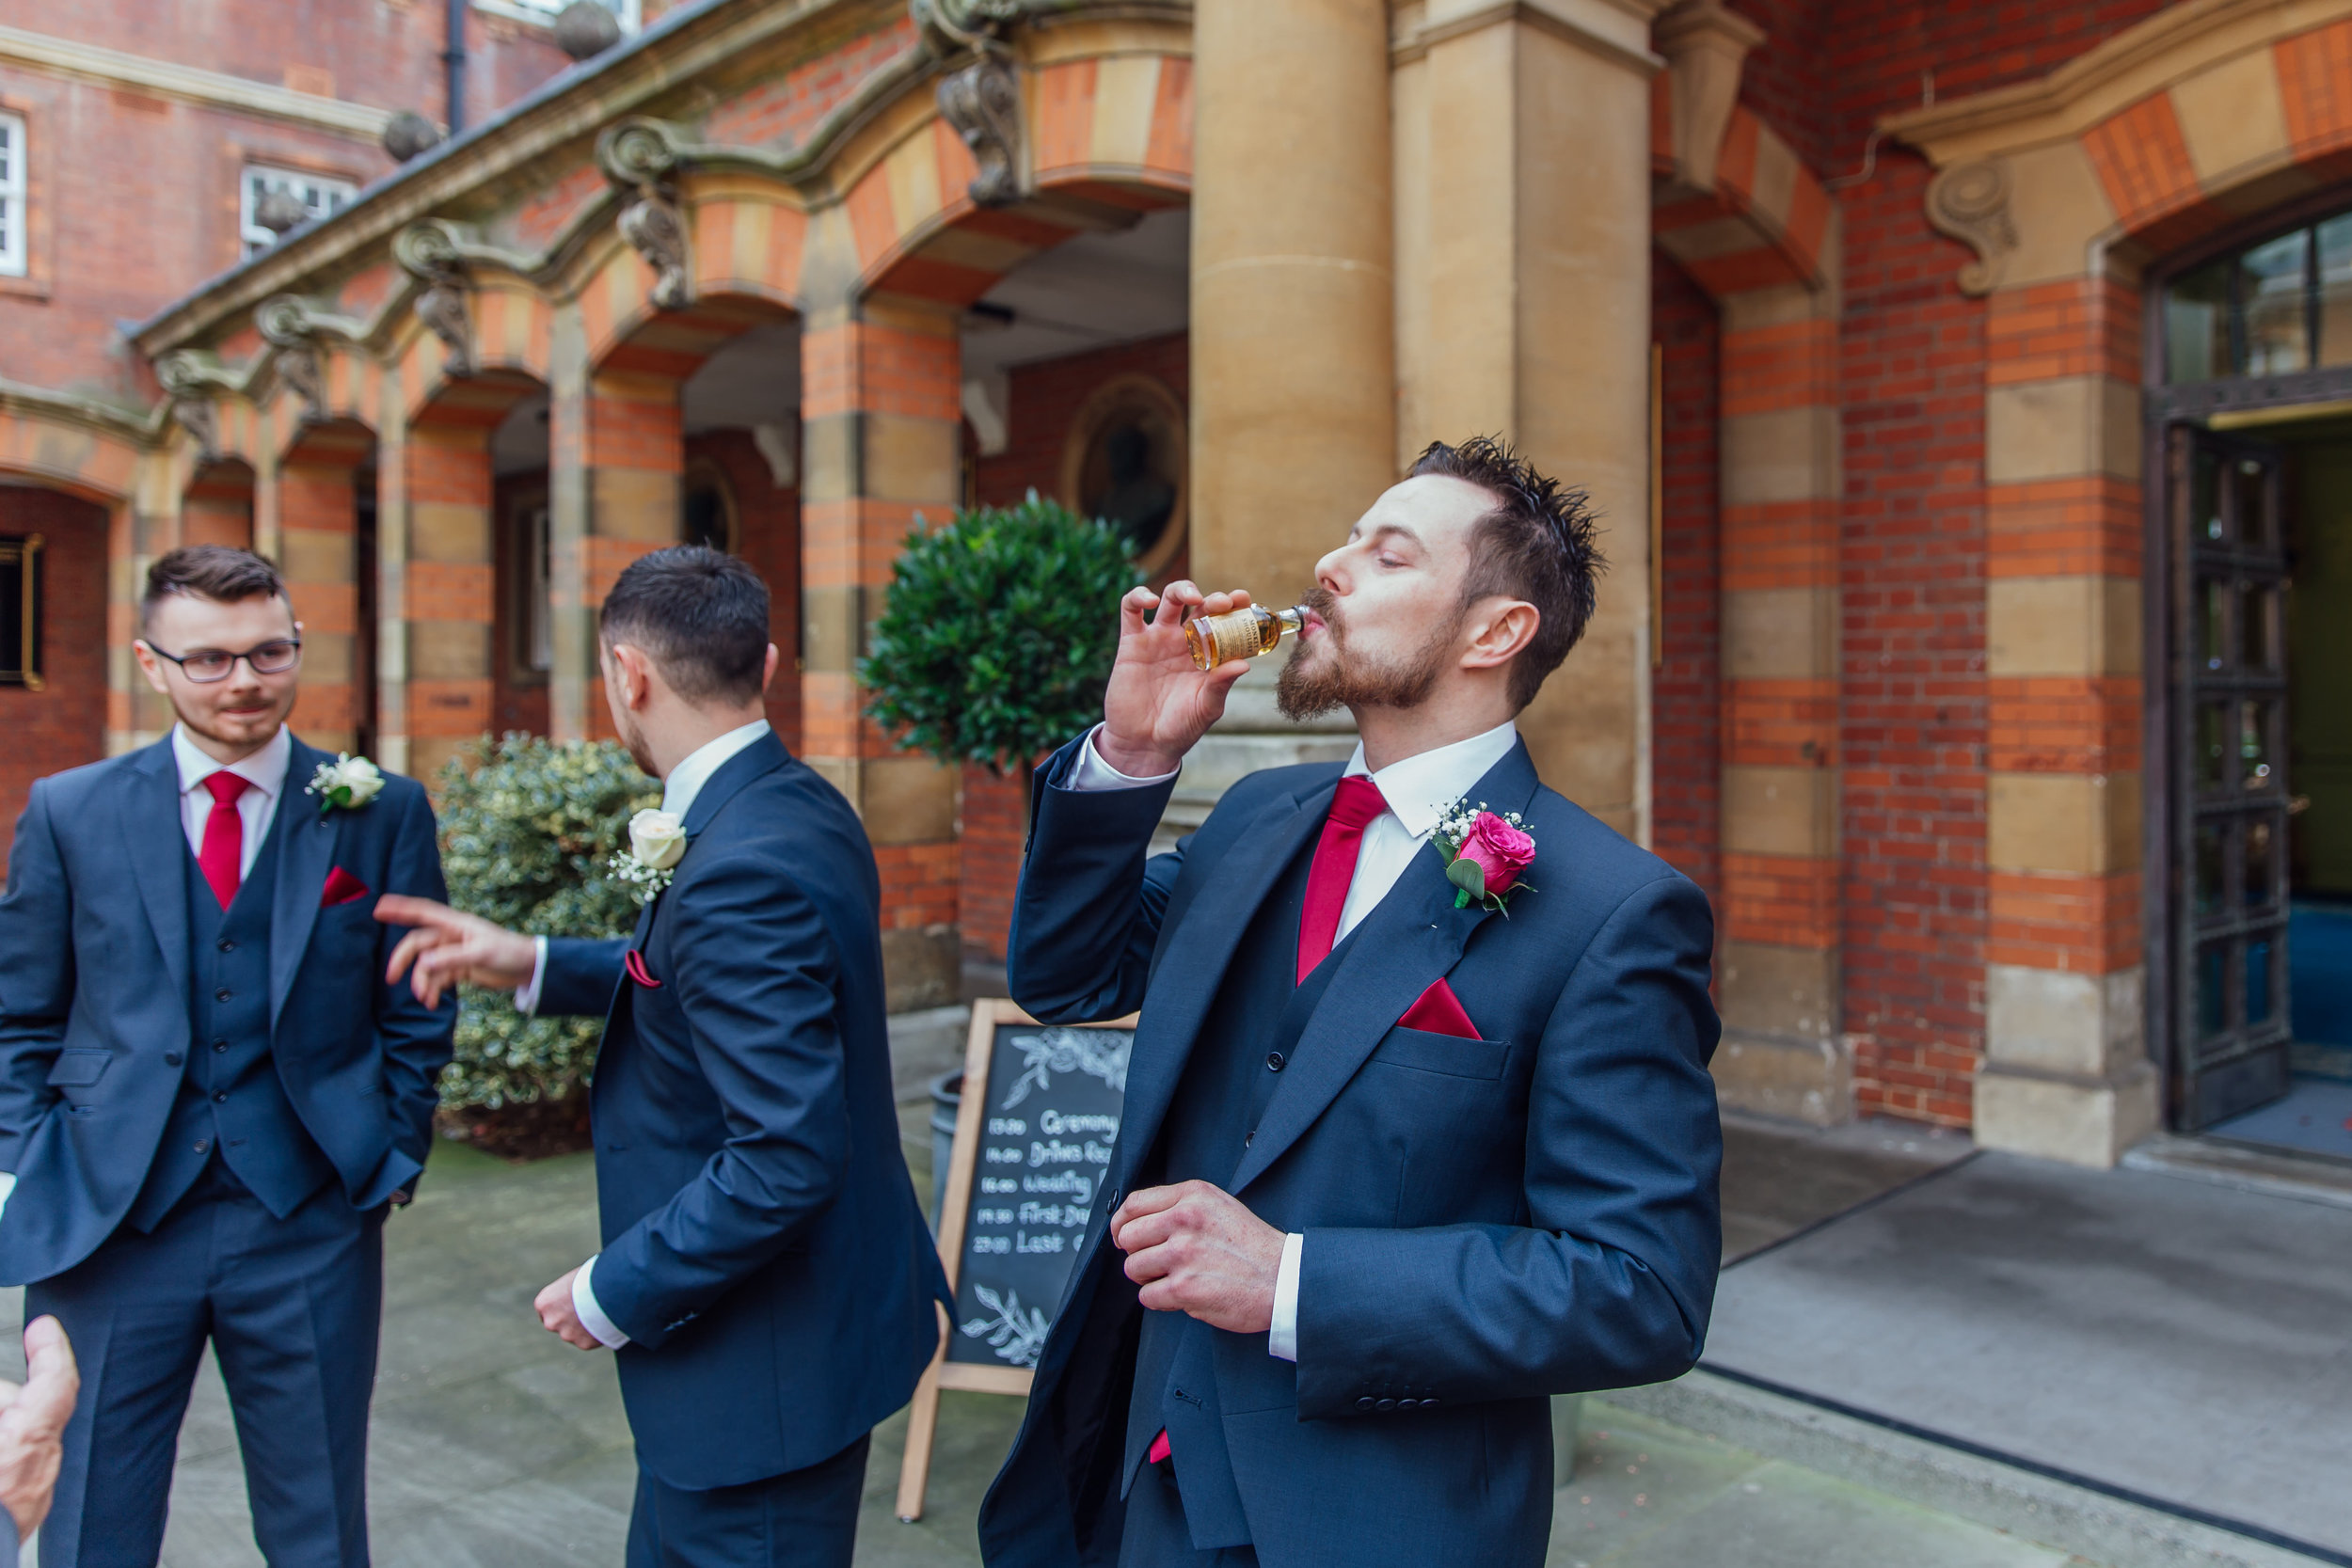 groom-getting-wedding-ready-wellington-college-berkshire / Amy-james-photography - Hampshire-wedding-photographer-hampshire